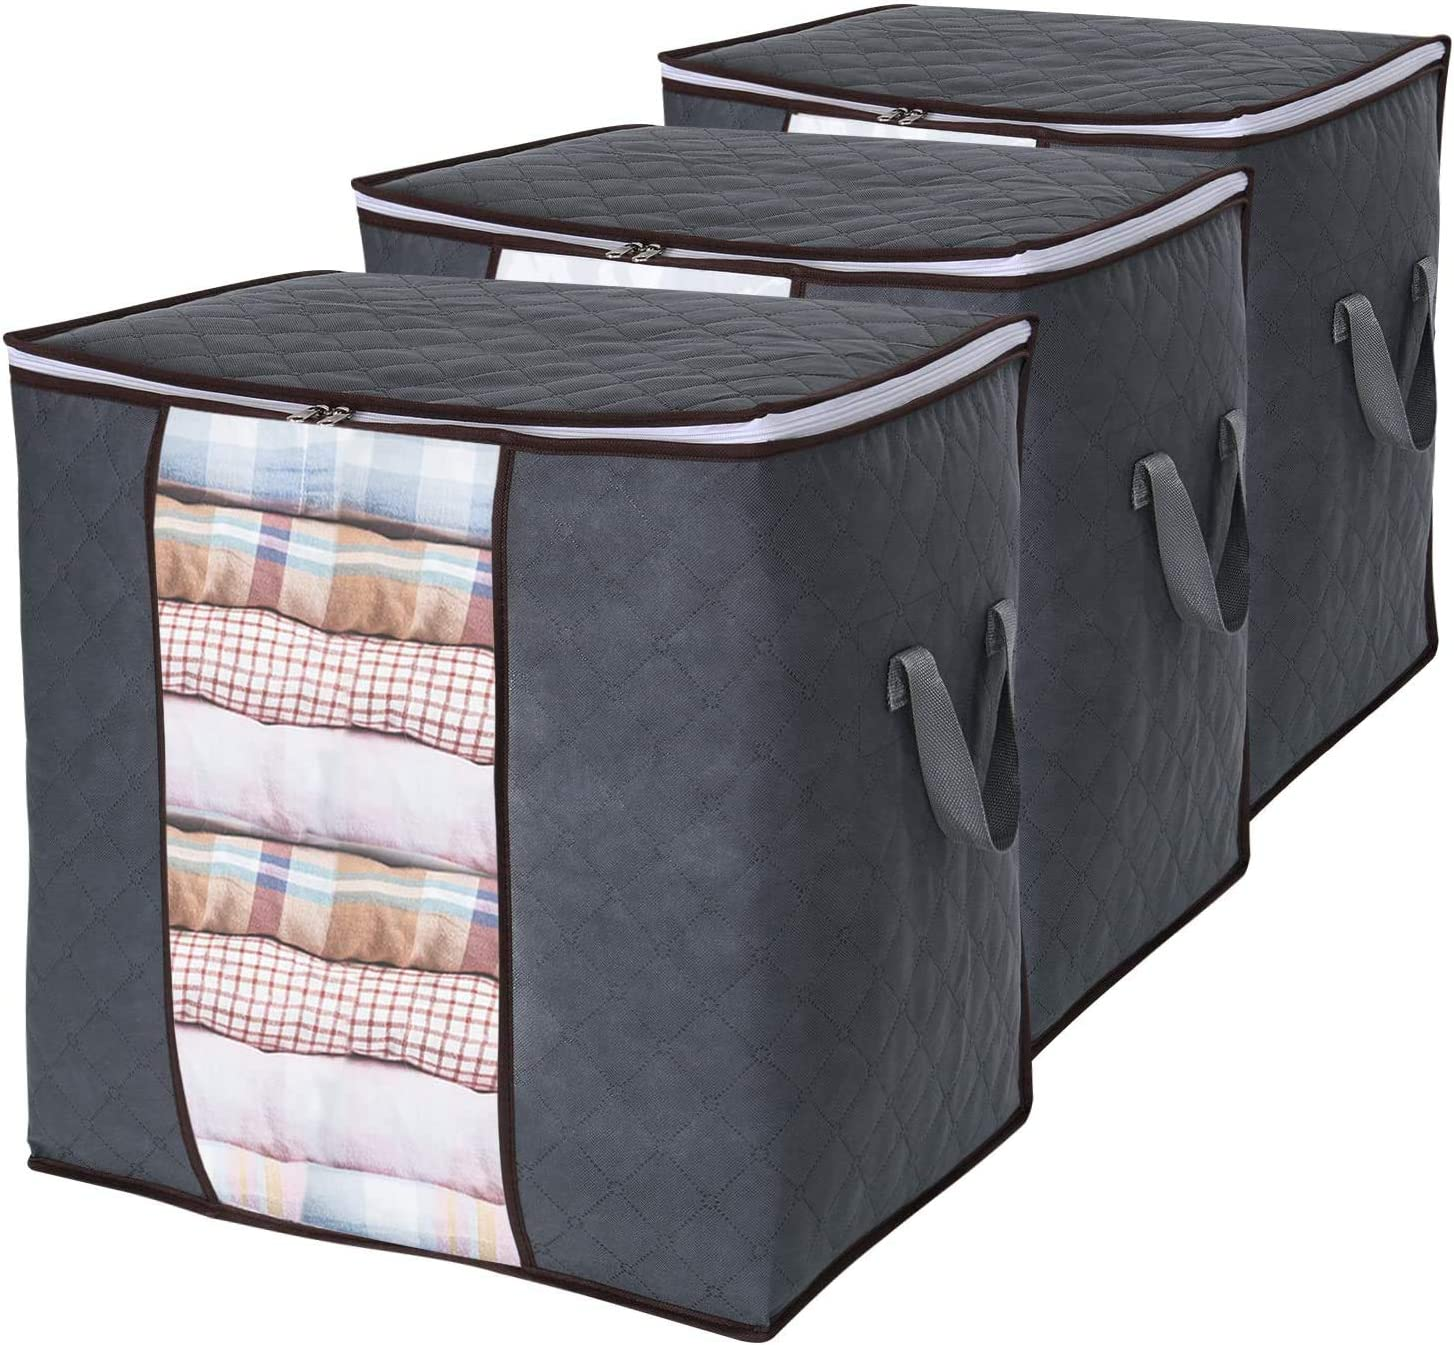 Amazon Com Lifewit Clothes Storage Bag 90l Large Capacity Organizer With Reinforced Handle Thick Fabric For Comforters Blankets Bedding Foldable With Sturdy Zipper Clear Window 3 Pack Grey Home Kitchen